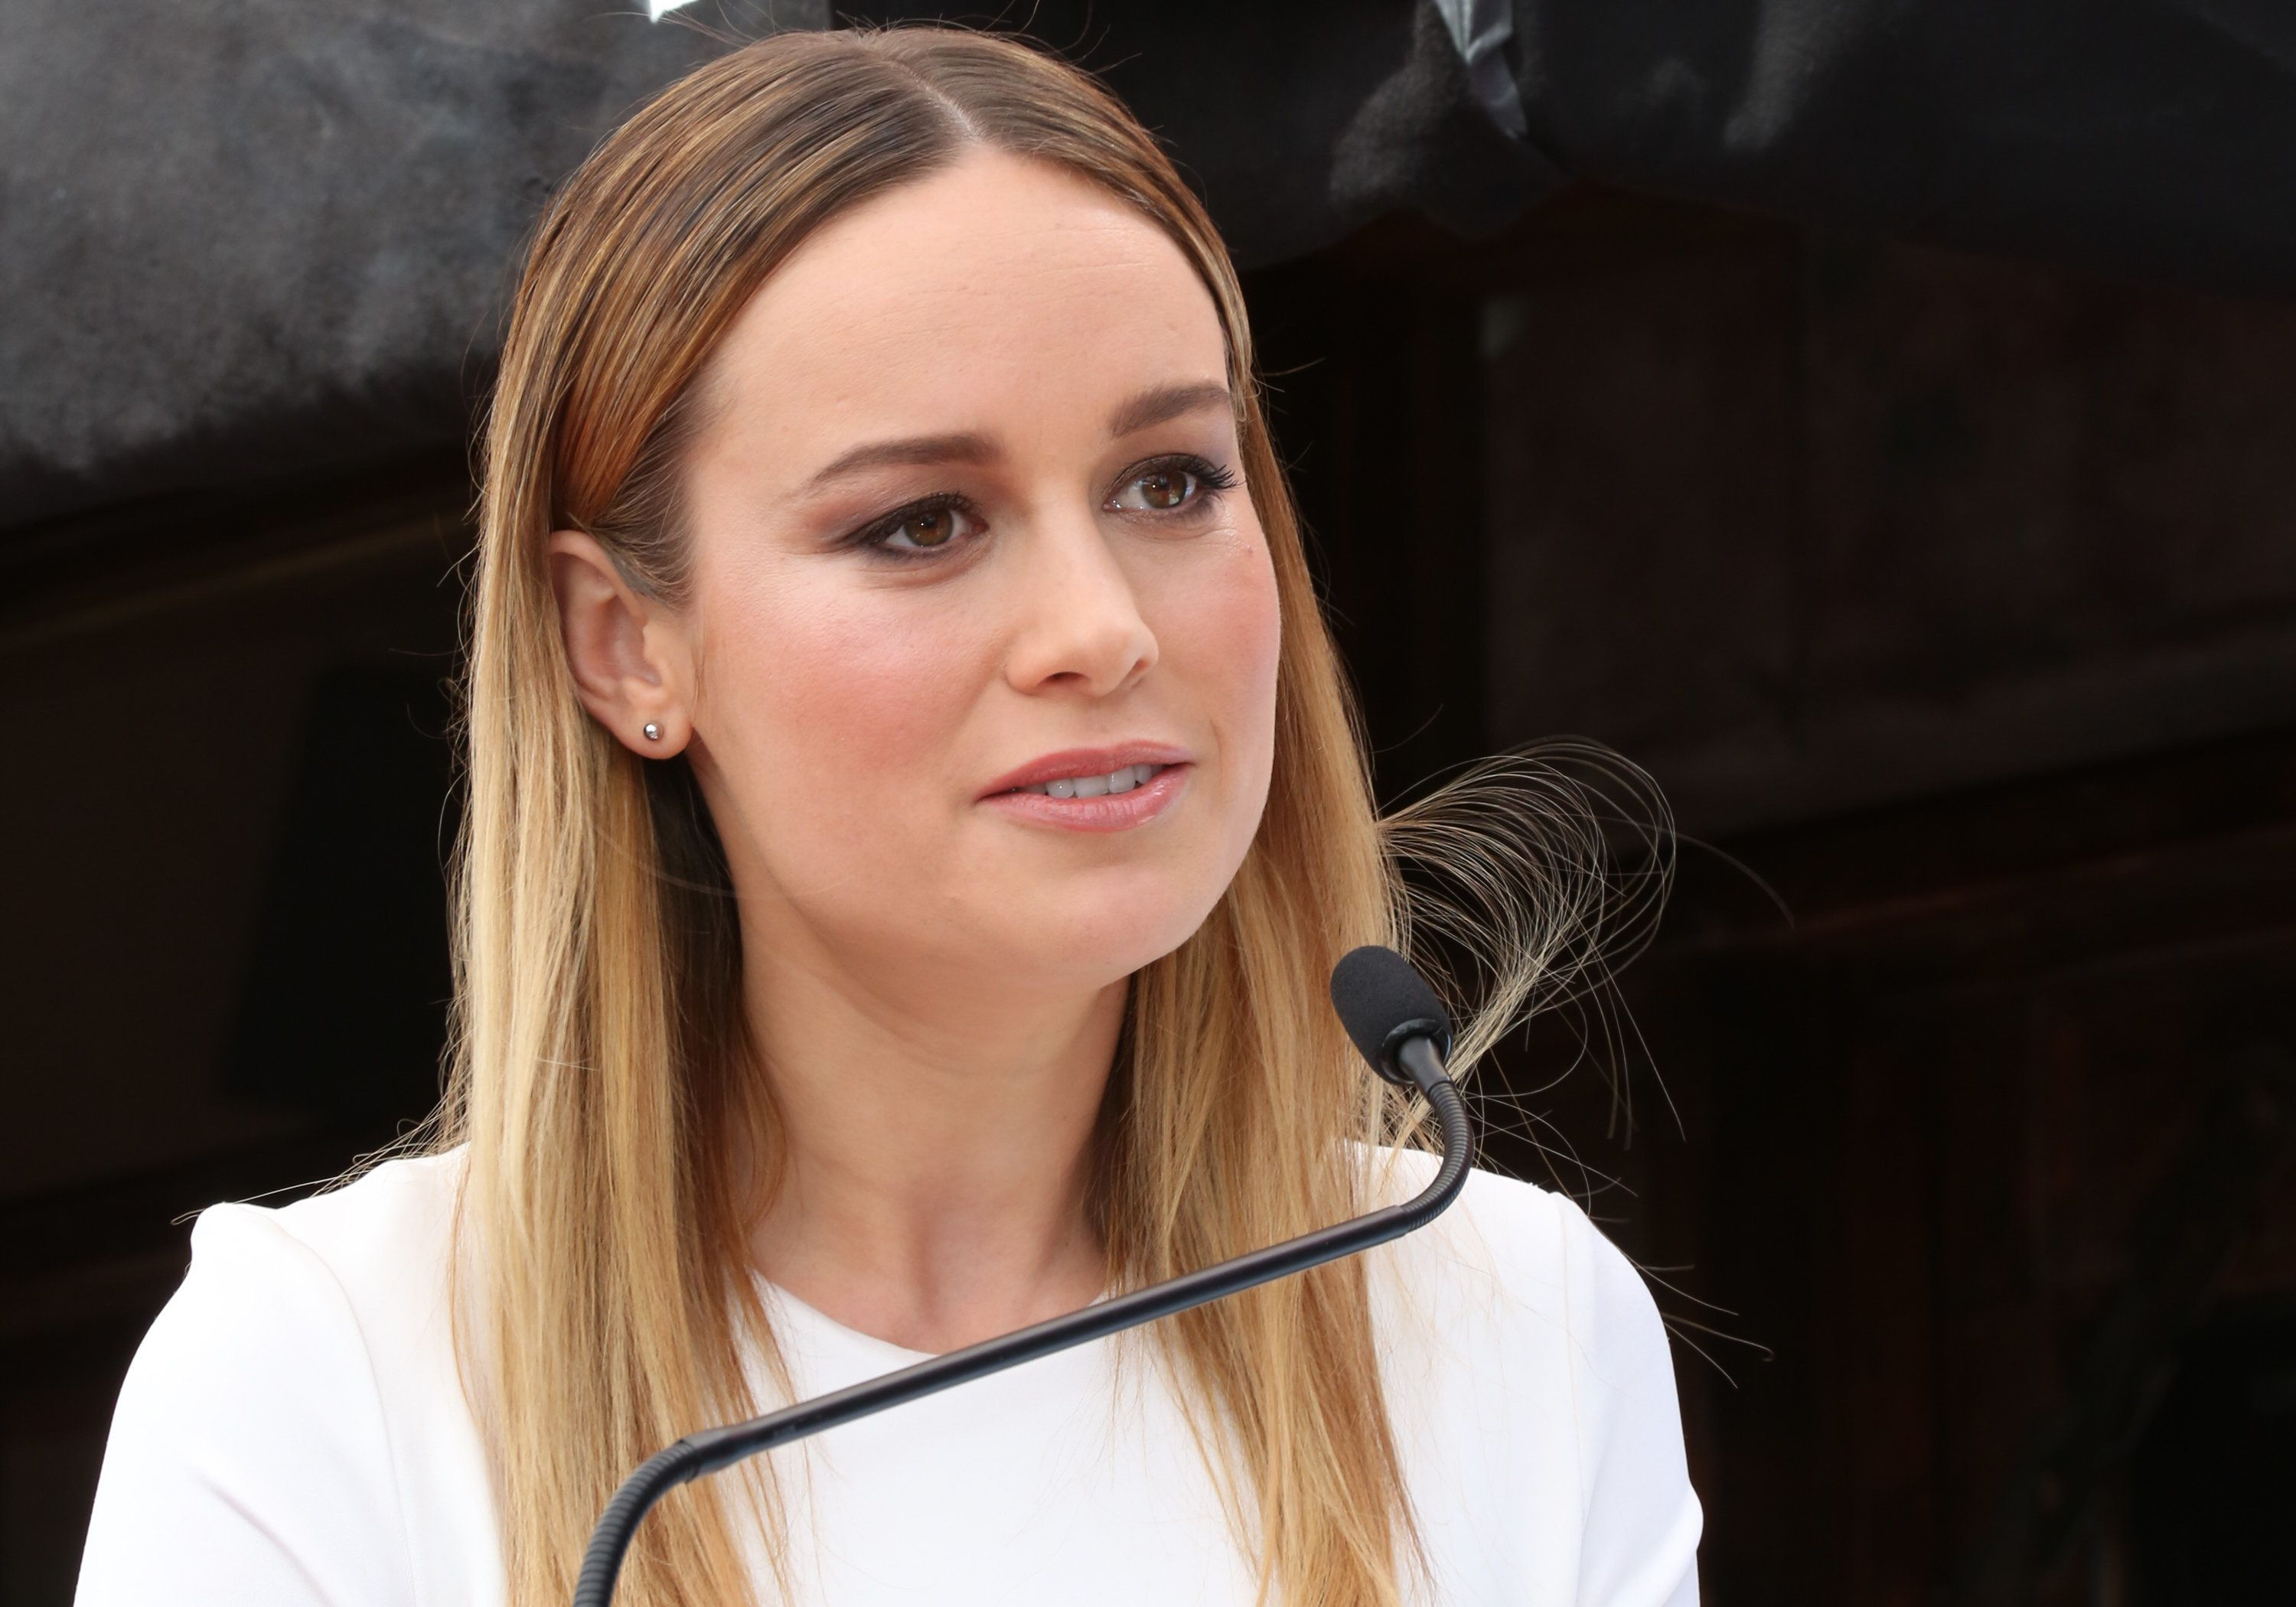 HOLLYWOOD, CA - MARCH 10:  Actress Brie Larson  attends the ceremony to honor John Goodman with a star on The Hollywood Walk of Fame on March 10, 2017 in Hollywood, California.  (Photo by Paul Archuleta/FilmMagic)